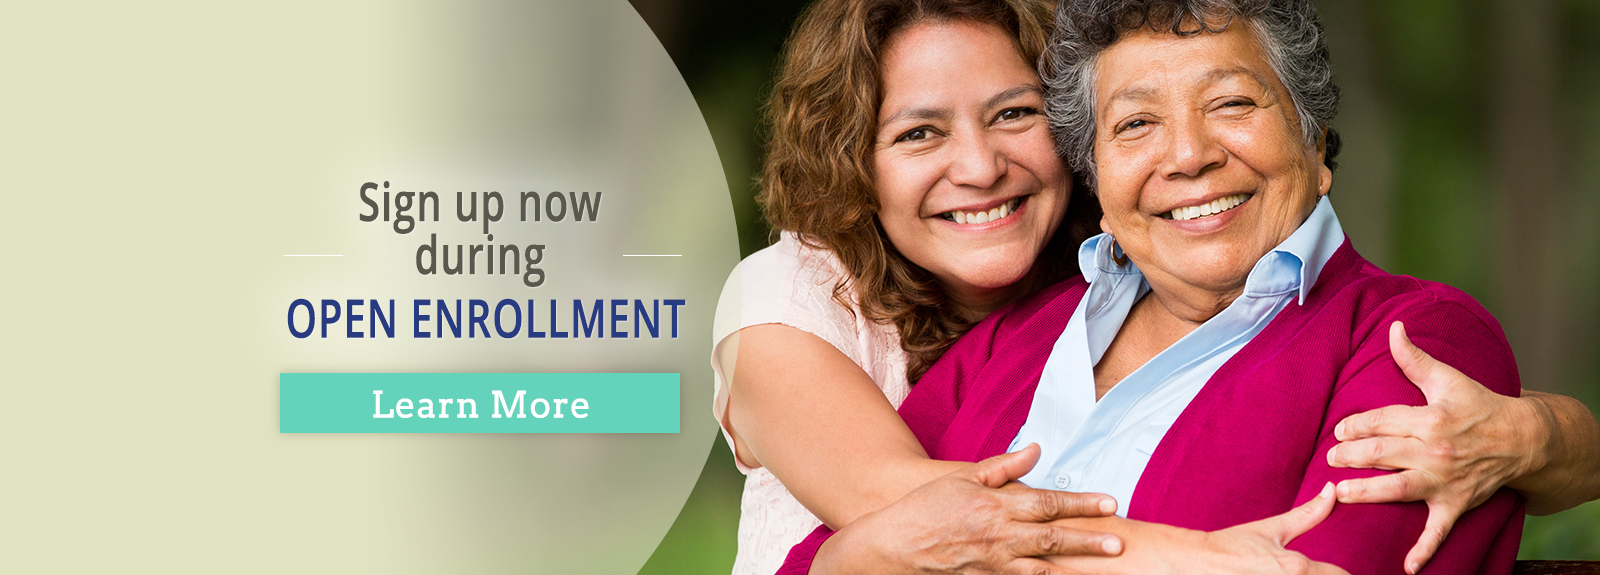 Sign up now during OPEN ENROLLMENT. Learn More.